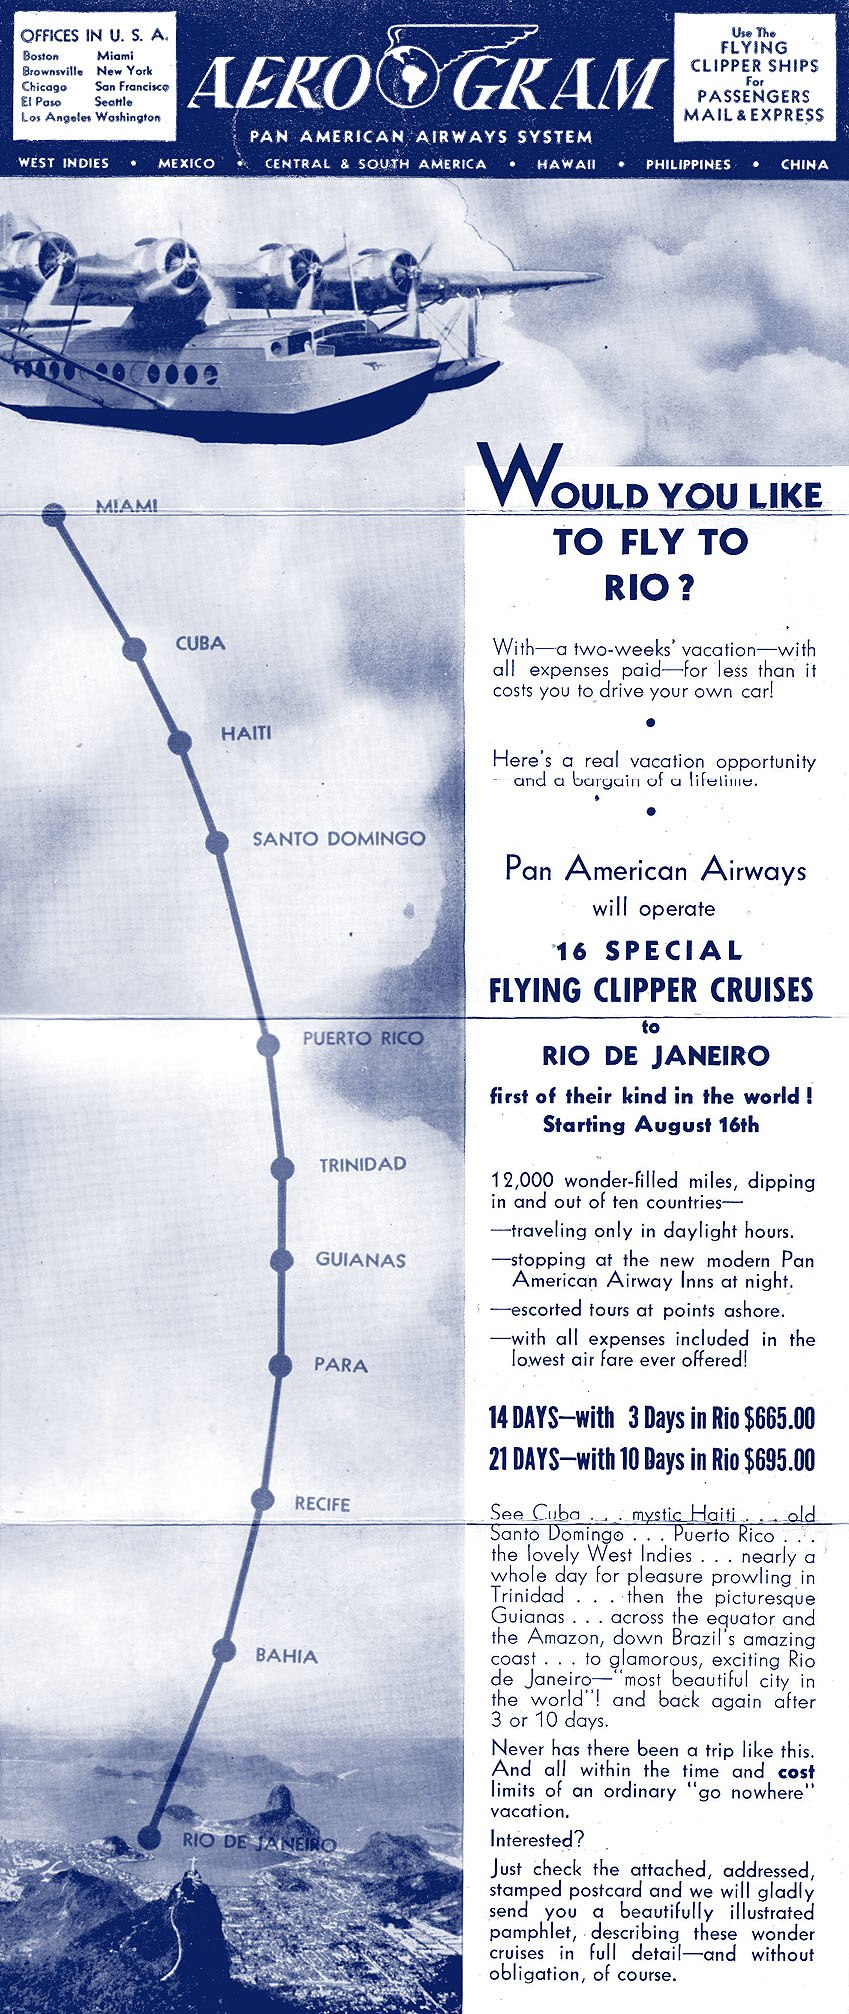 PAA Flying Clipper Cruises to South America 1941